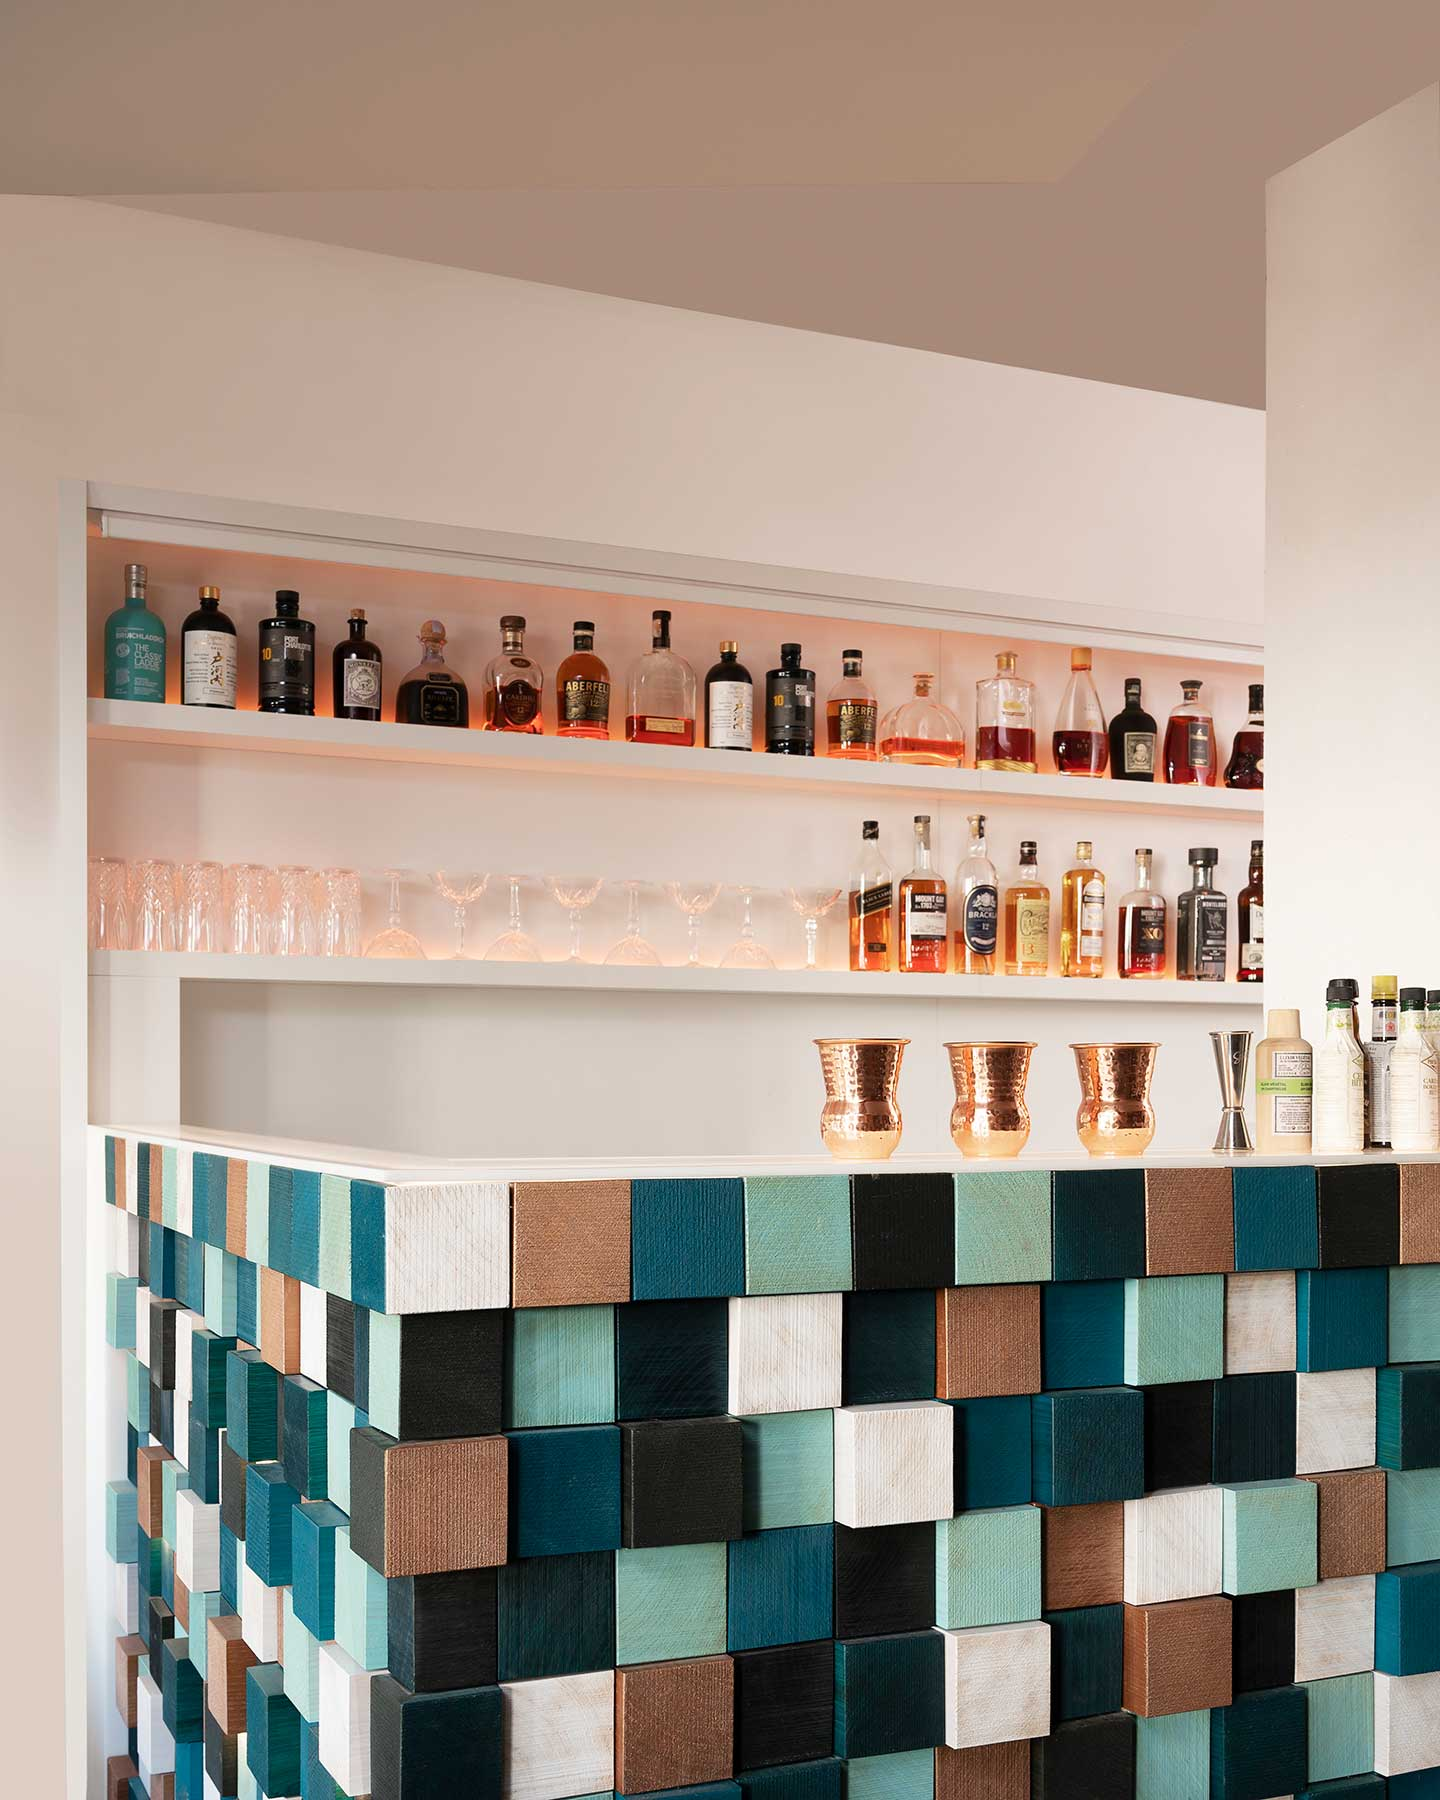 Multicoloured wooden bar with alcohol bottles on shelves